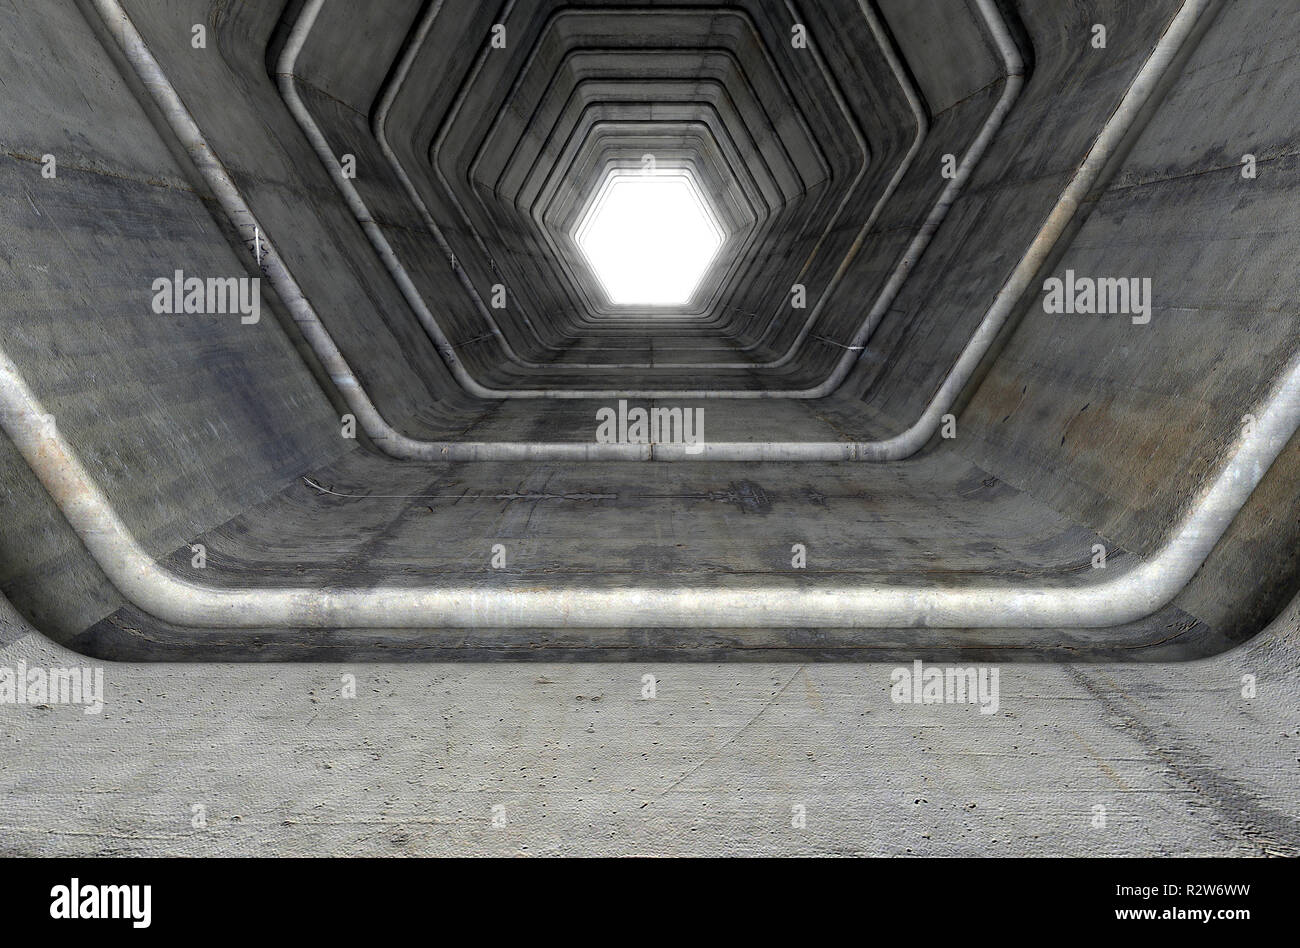 A look down a concrete tunnel made out of hexagonal geometric shapes with a light in the distance at the far end - 3D render Stock Photo